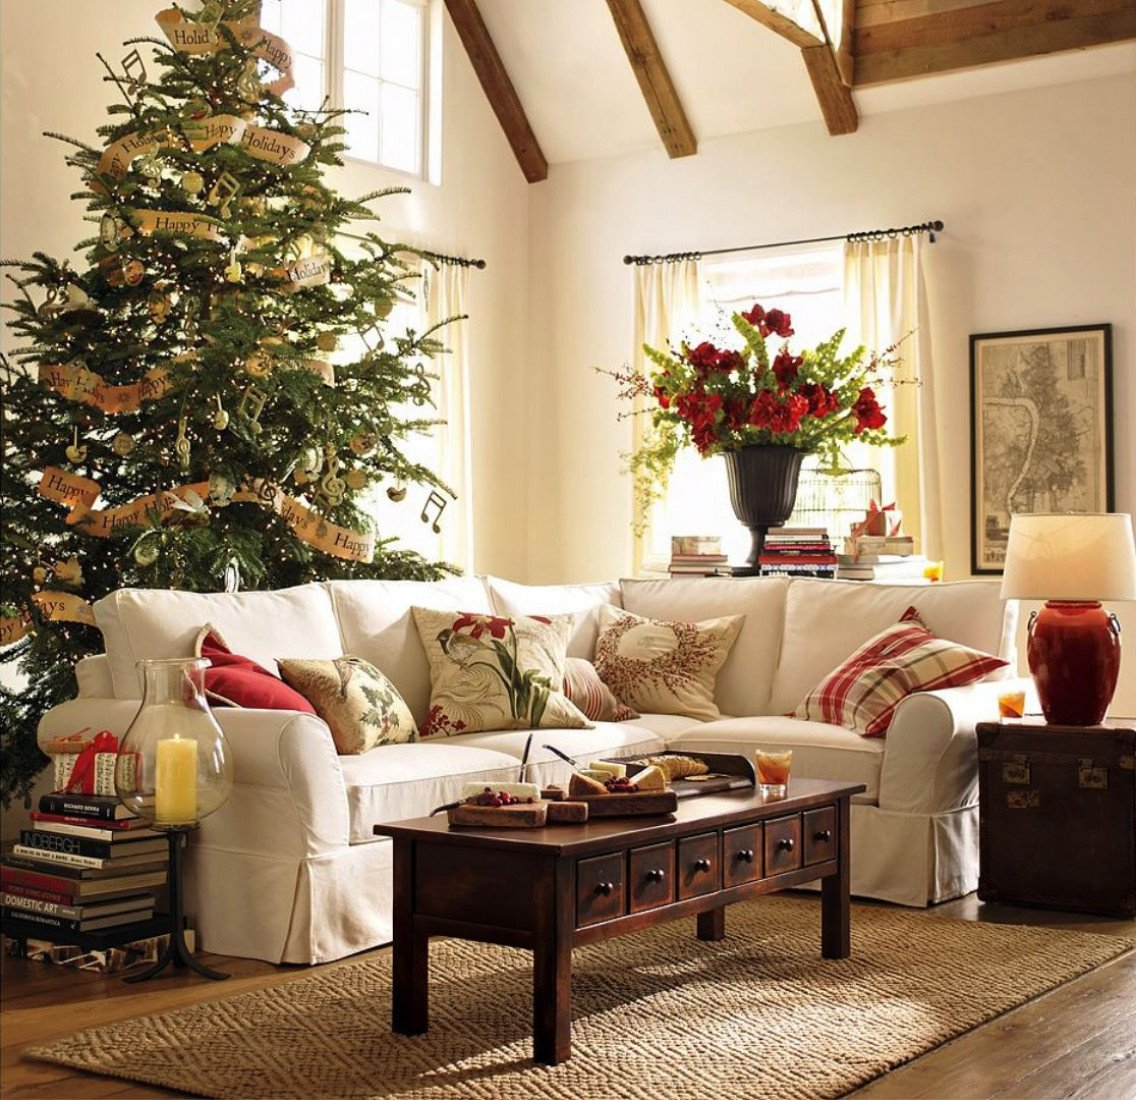 Tree Decor for Living Room Lovely 6 Quick Tips On Rearranging Your Living Room for the Christmas Tree